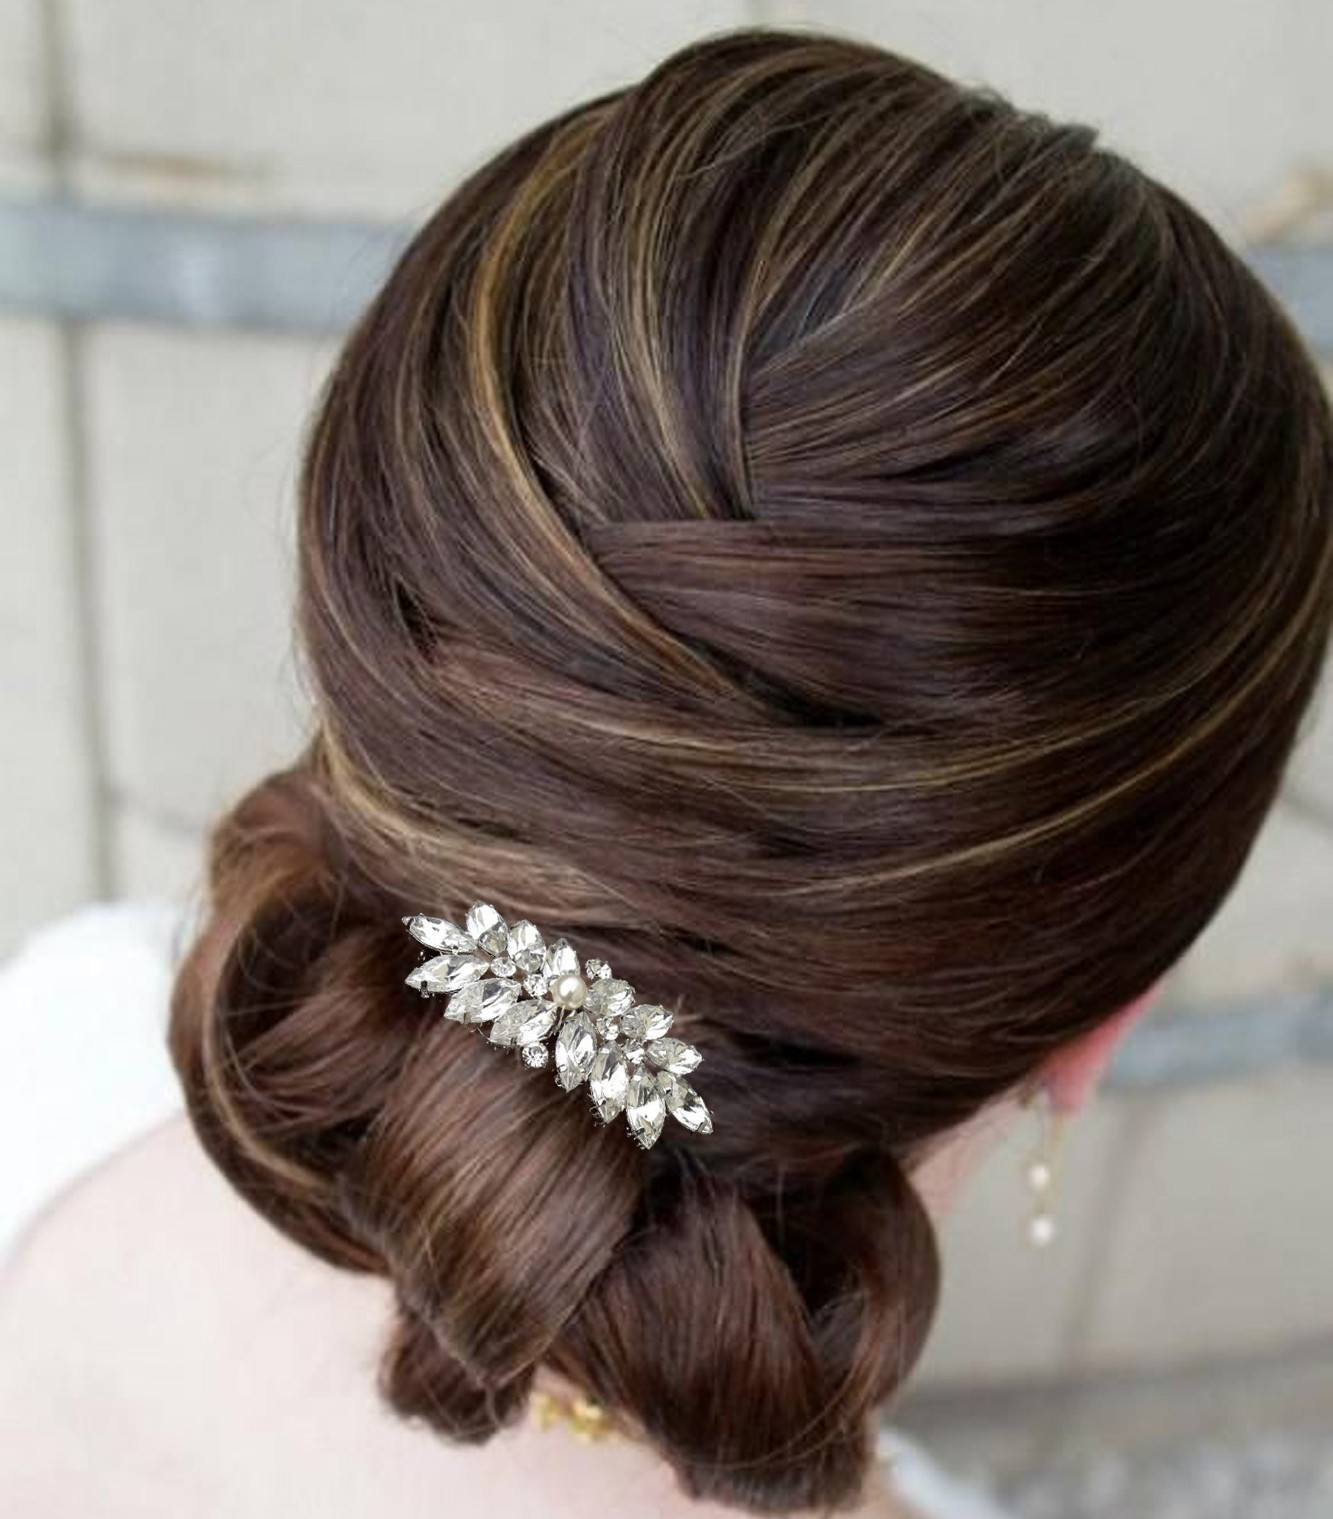 hair comb styles wedding hair combs jules bridal jewellery 4408 | wedding hair combs vintage inspired style wedding comb lucia mini 3